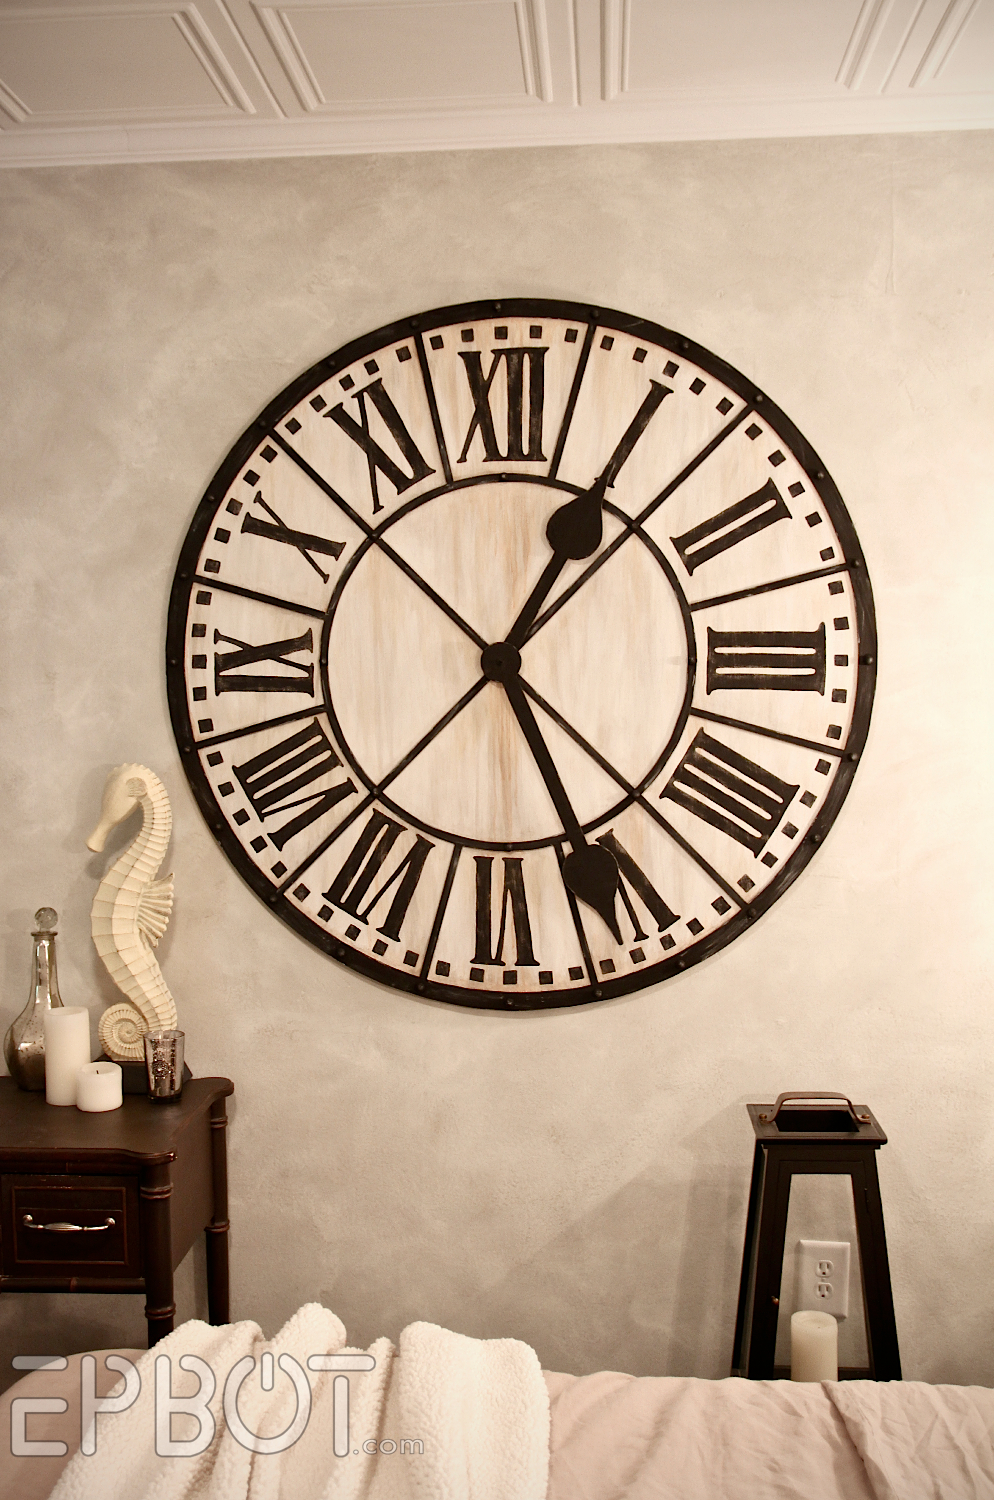 epbot diy giant tower wall clock. Black Bedroom Furniture Sets. Home Design Ideas